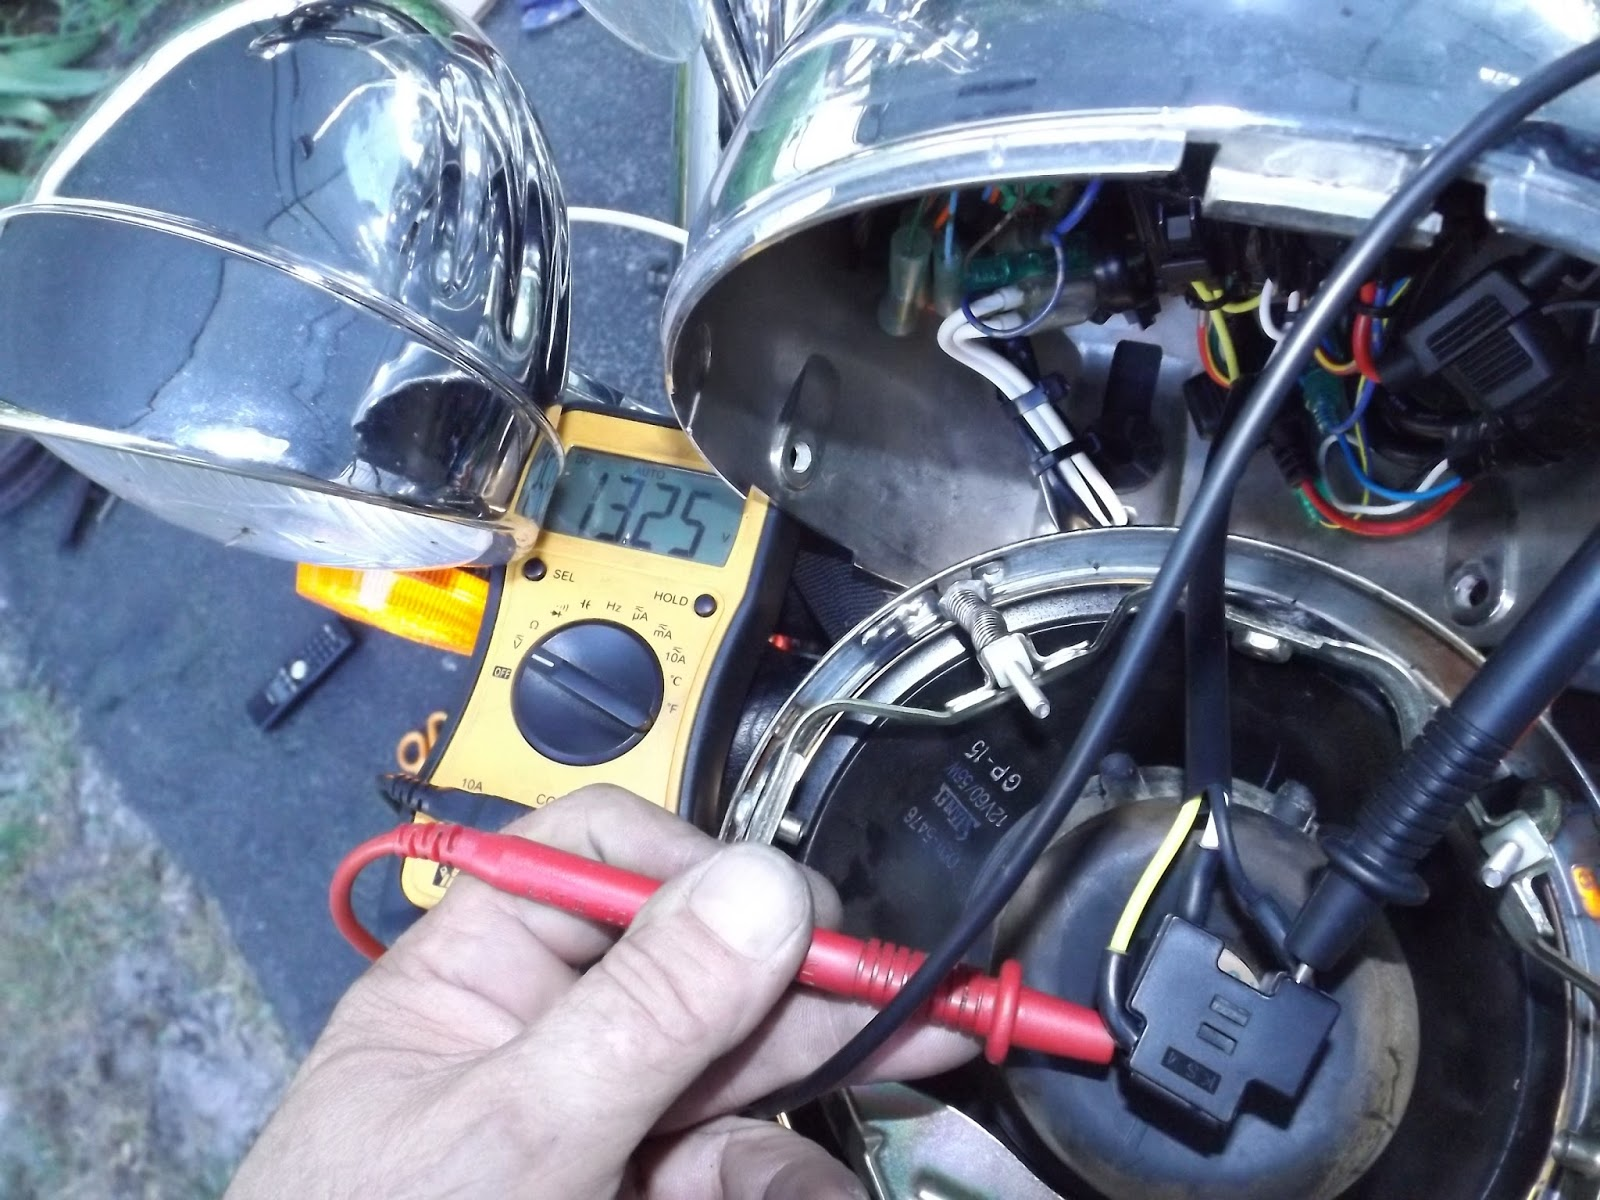 Voltage Drop At The Headlight Bulb - Perserve Those Switches